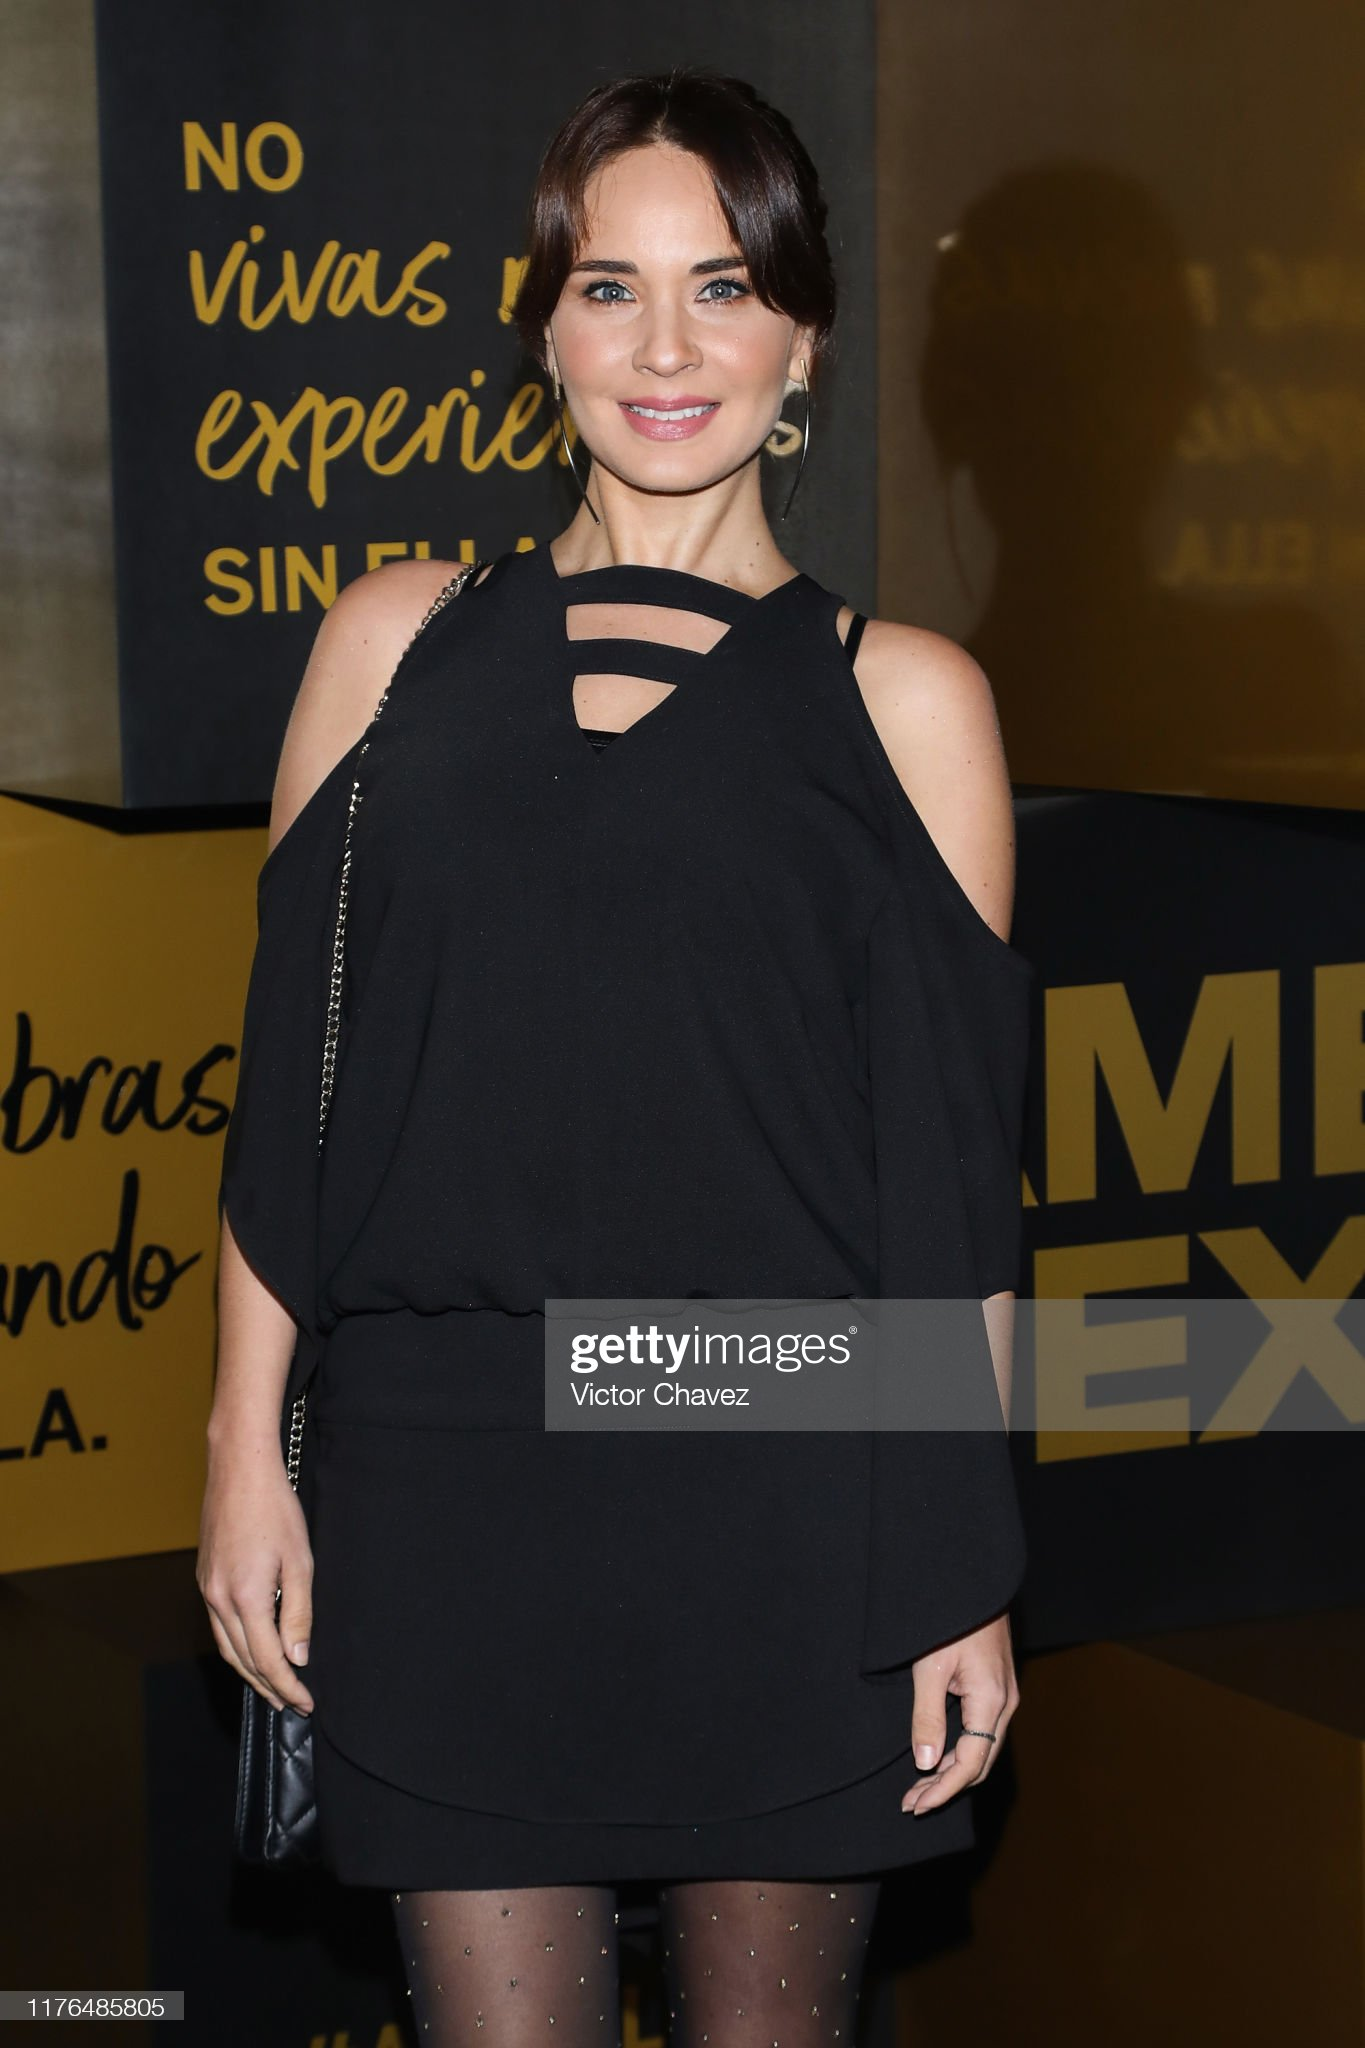 https://media.gettyimages.com/photos/adriana-louvier-attends-the-golden-carpet-of-the-american-express-picture-id1176485805?s=2048x2048